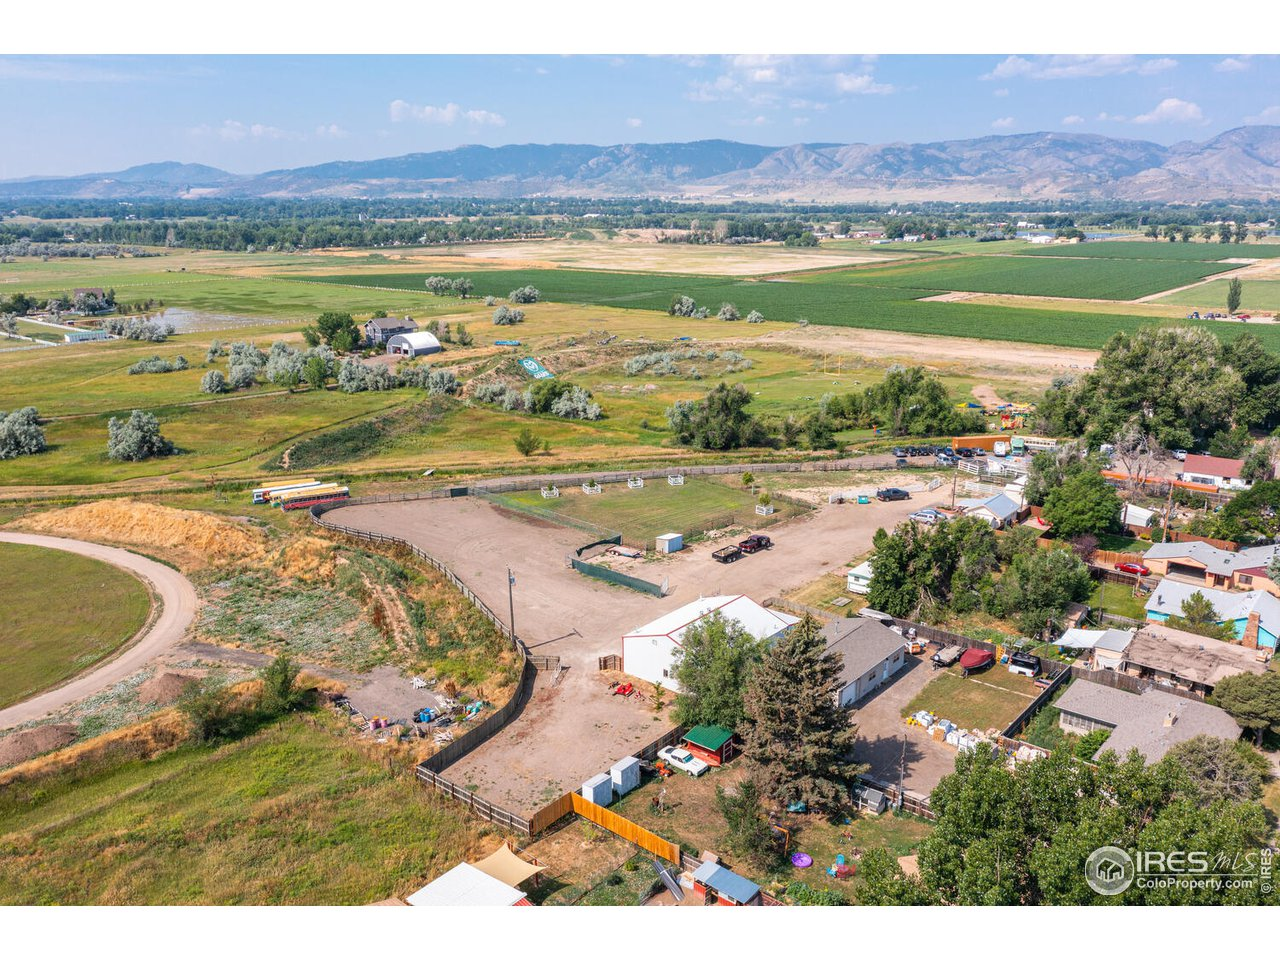 Rare opportunity in this current market with 3.5 acres fully fenced with amazing mountain views!